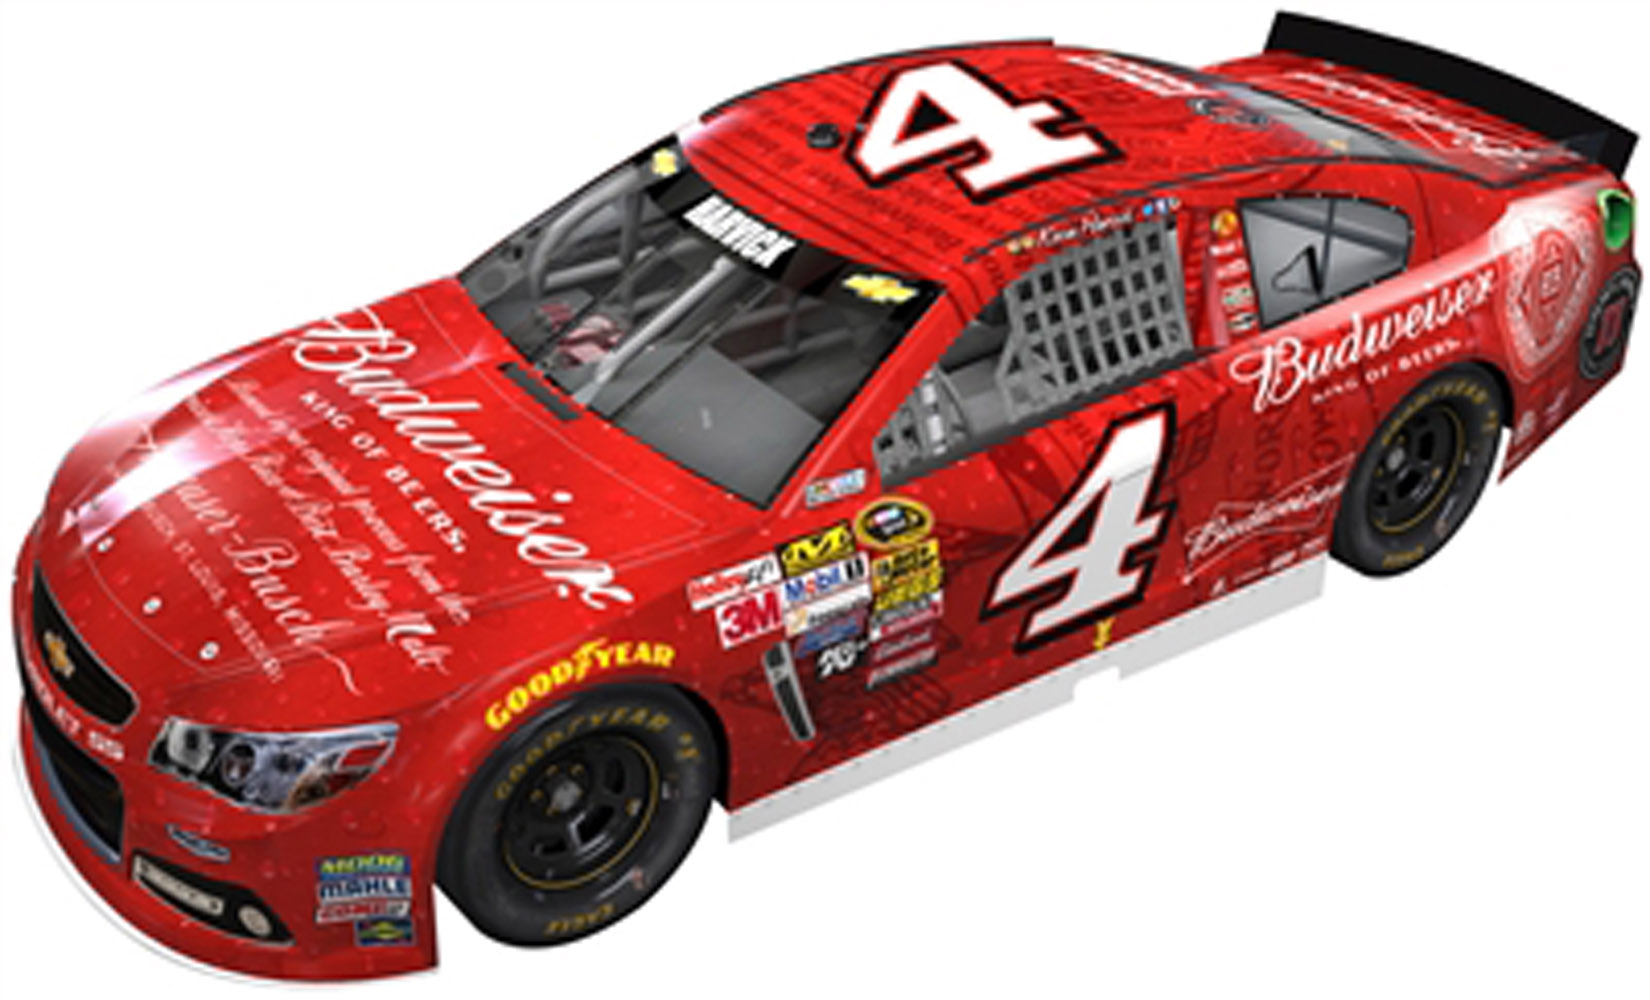 2014 Kevin Harvick #4 Budweiser Aluminum Bottle 1:24 Diecast Car